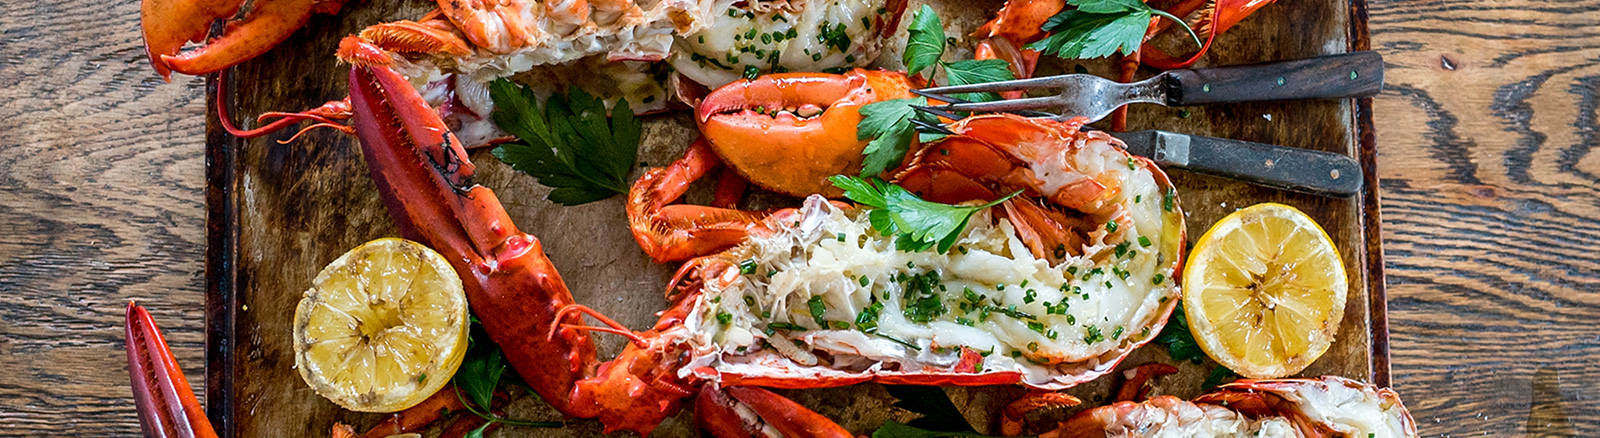 Grilled Lobster with Lemon Garlic Butter by Dennis The Prescott